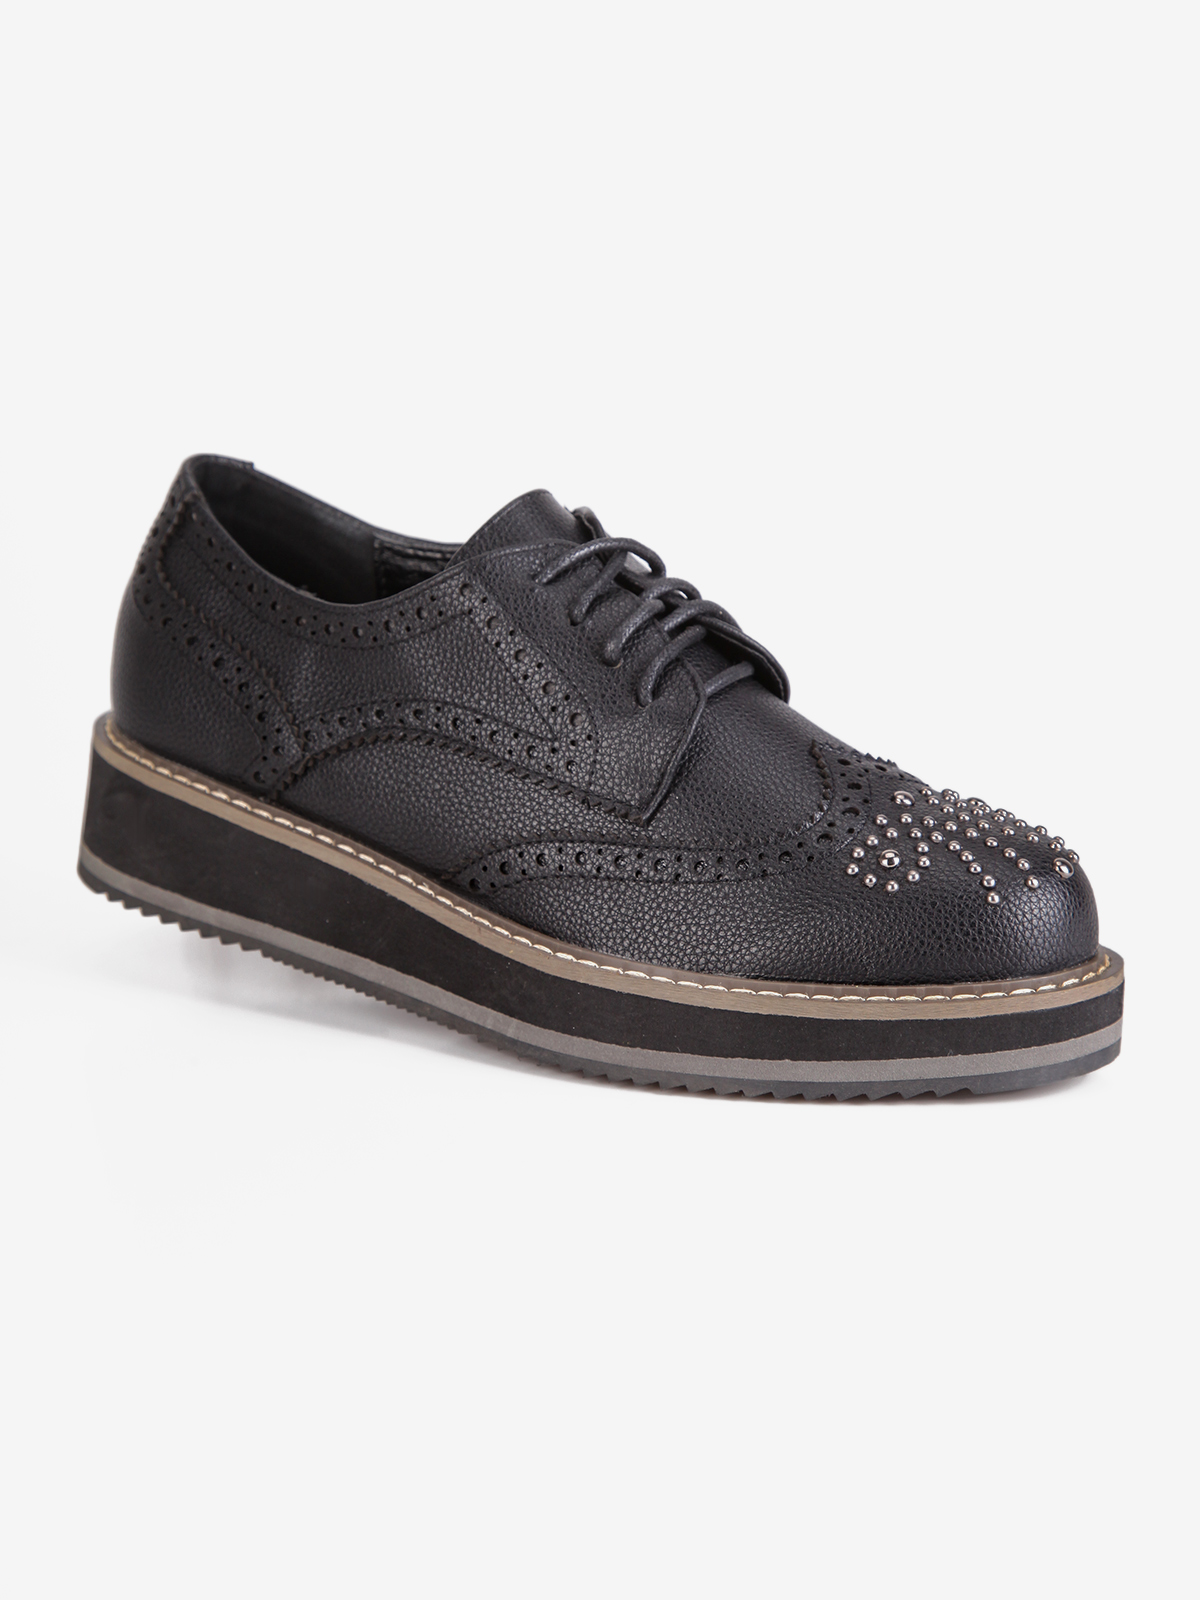 SWEET SHOES Brogues With Studs-low